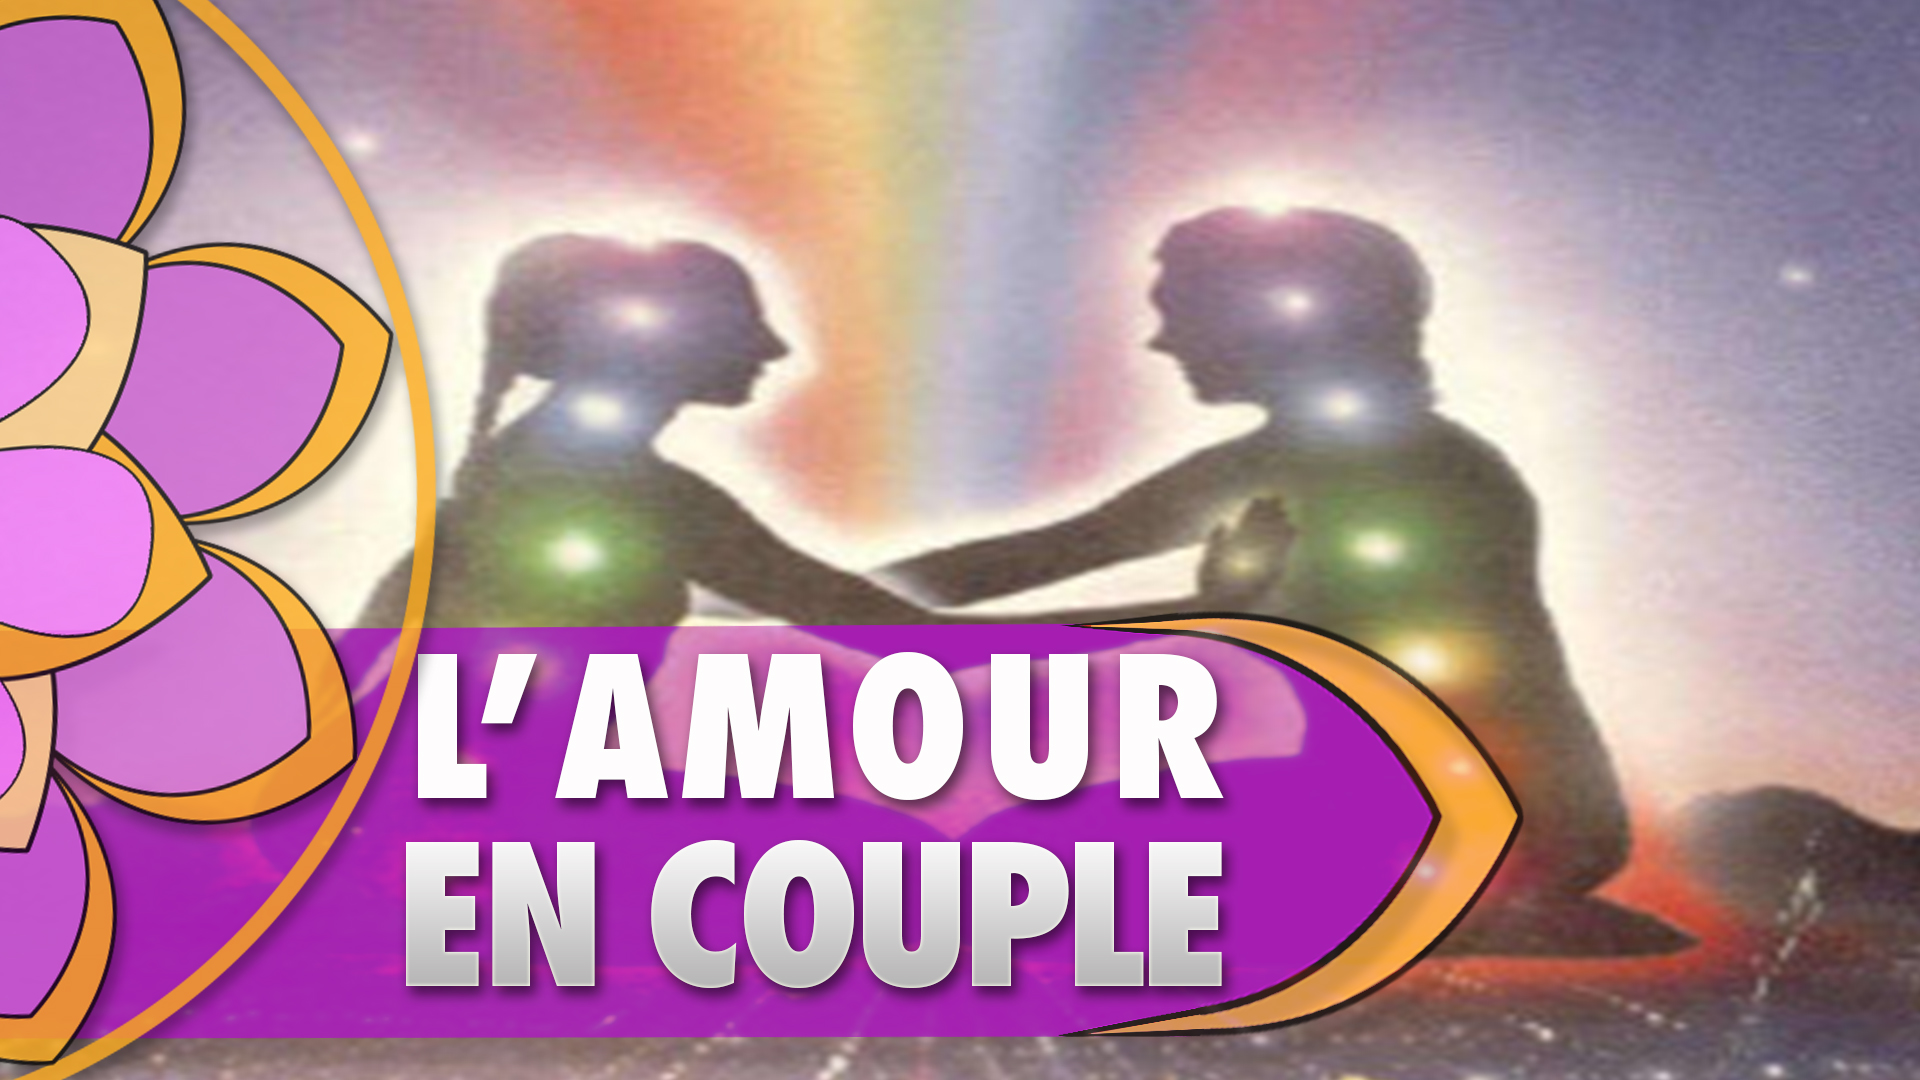 Comment vivre l'amour inconditionnel en couple ?